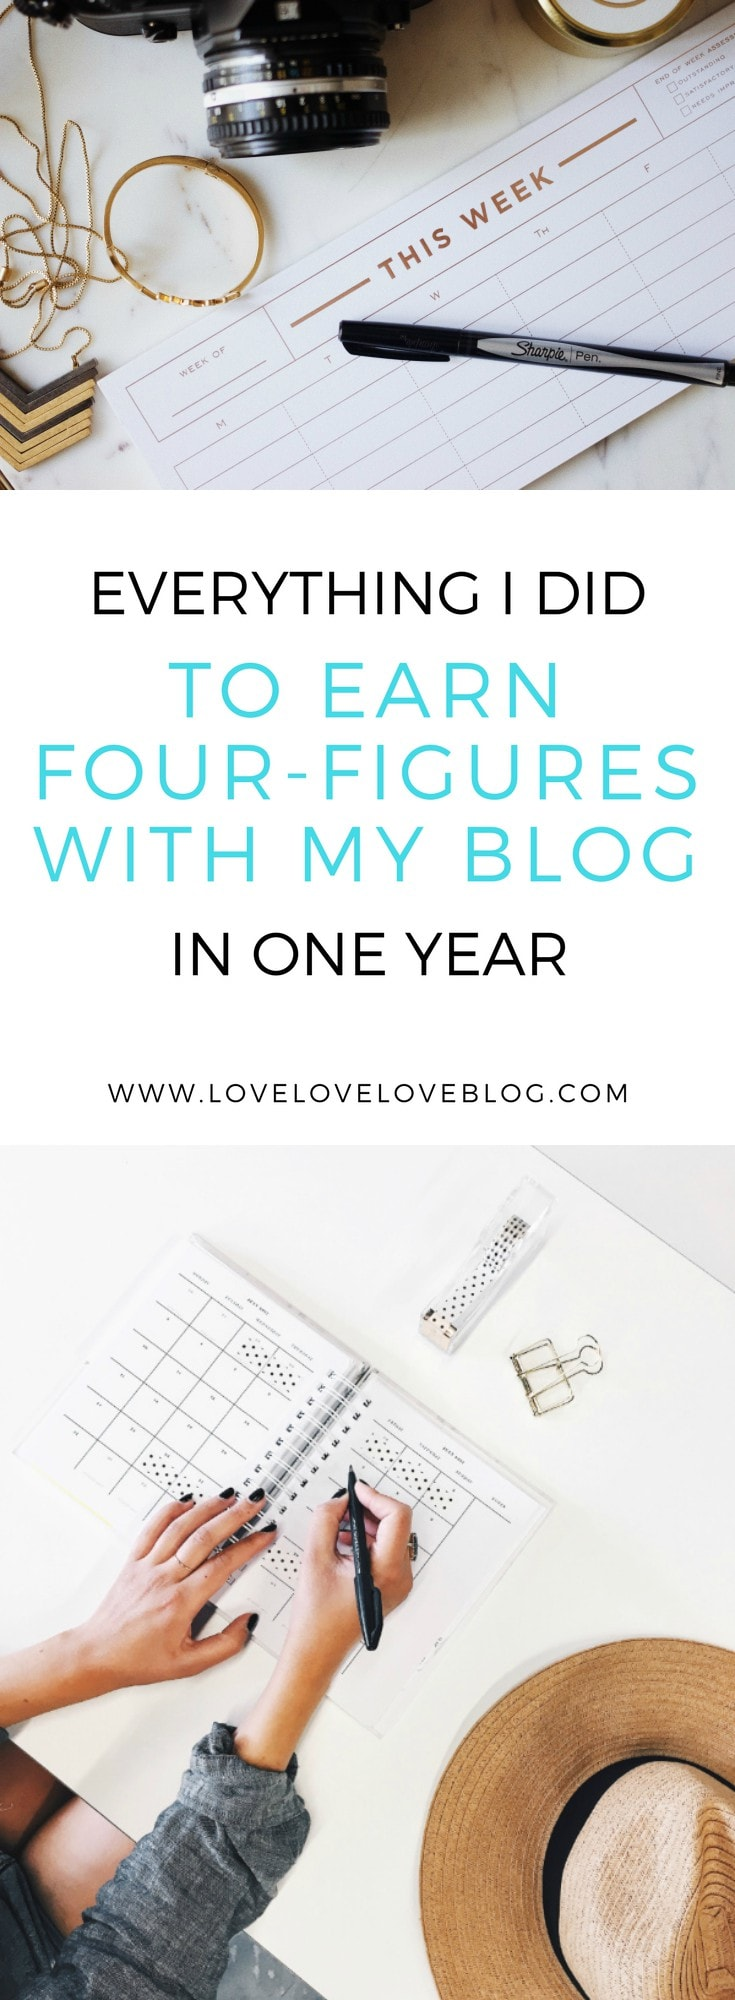 Make money with blogging in one year